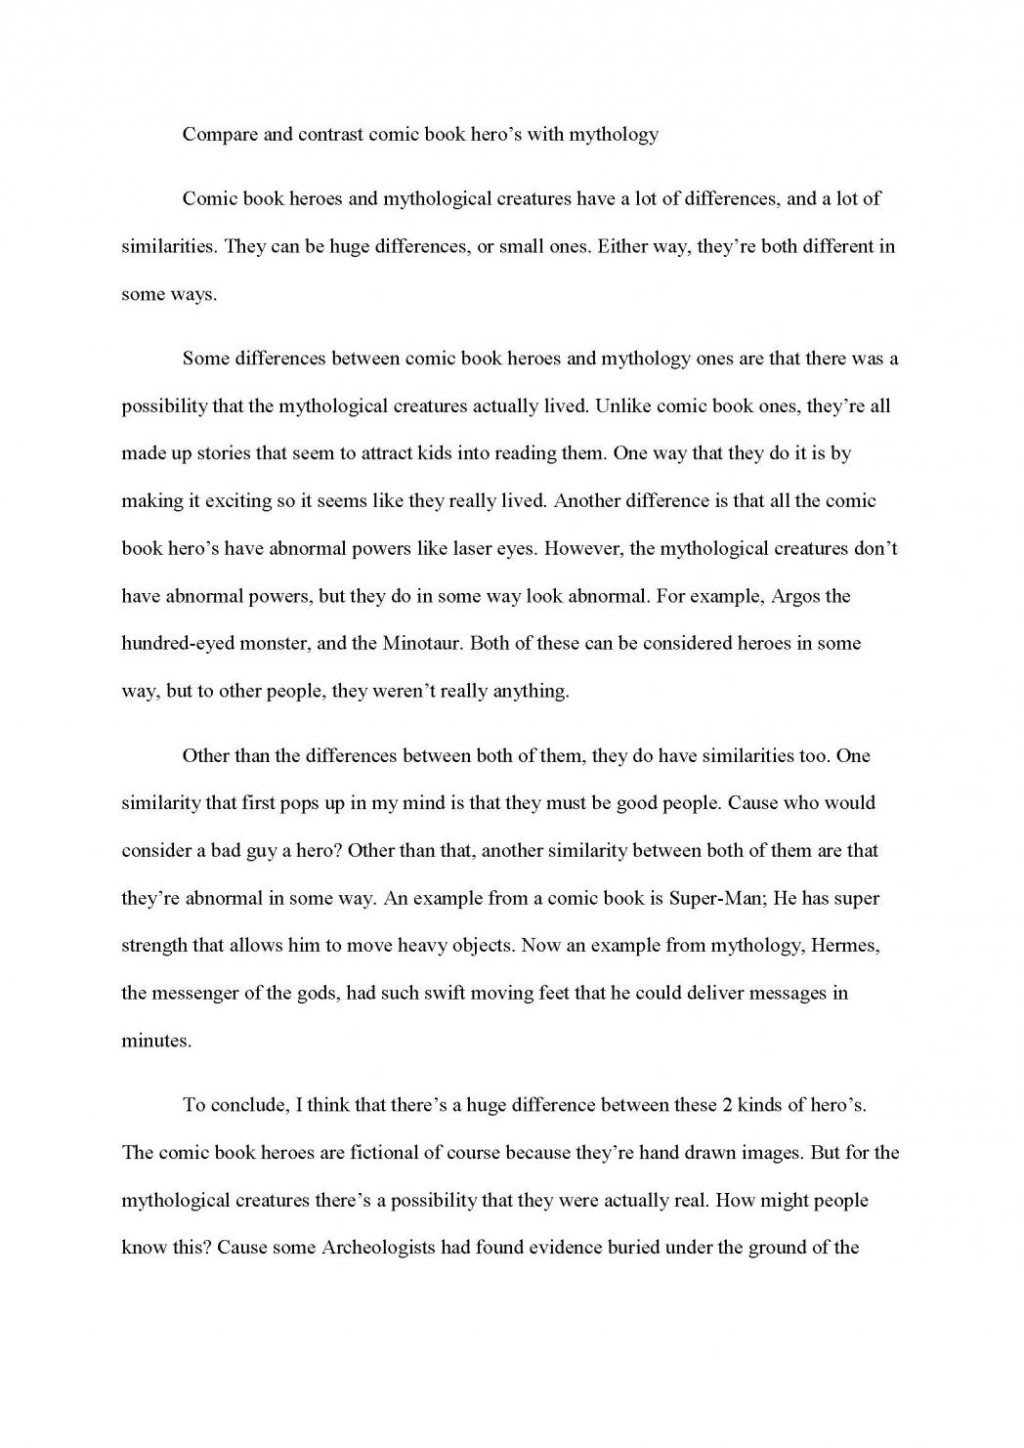 010 Essay Example Compare And Contrast Examples High School Middle S 4th Grade Food Vs College 6th 3rd 5th Block Format Pdf Sensational Sample Introduction For Comparison Point-by-point Of An Paragraph Large